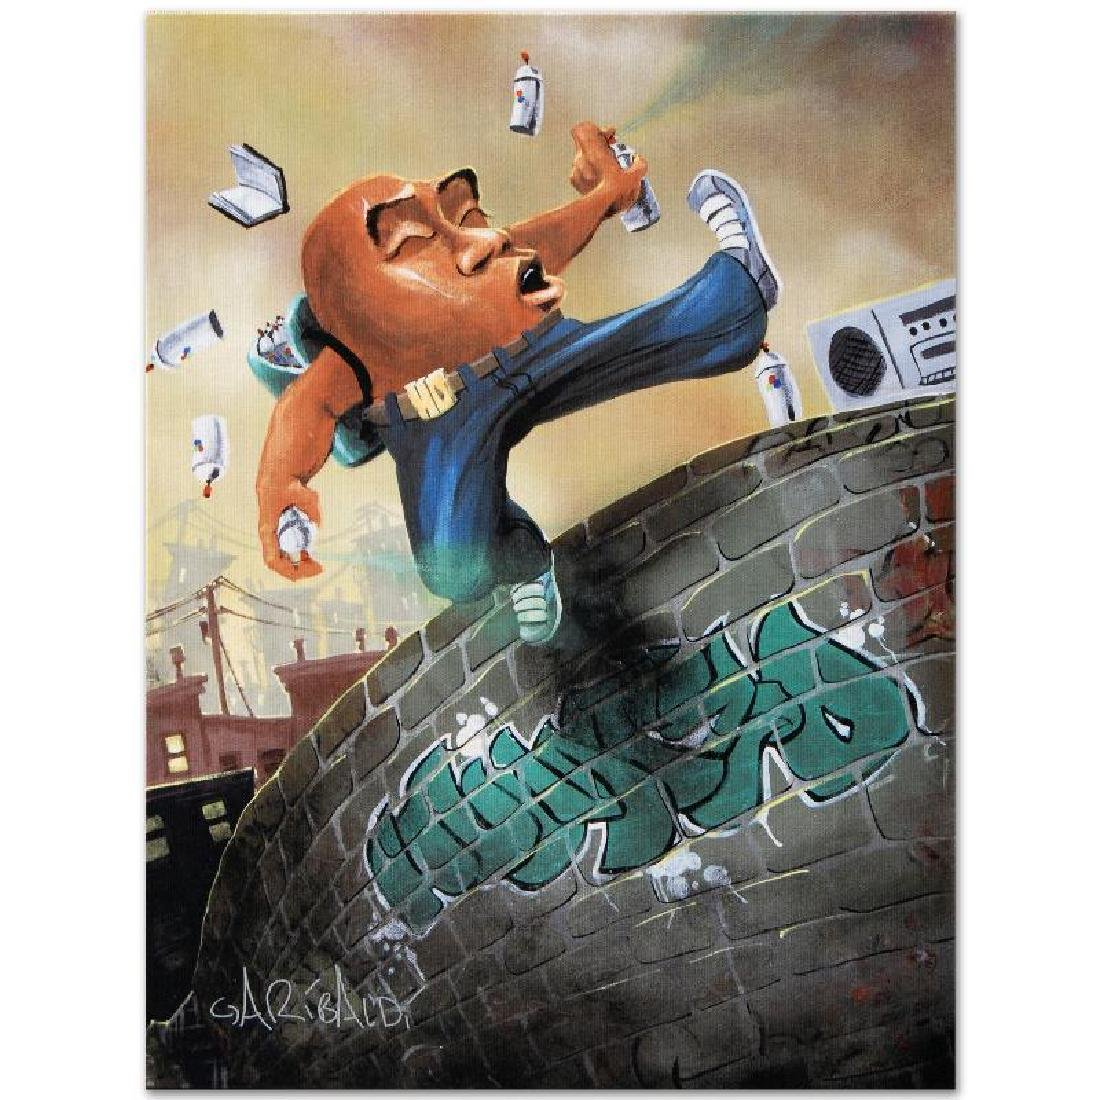 Humpty Dumpty by Garibaldi, David